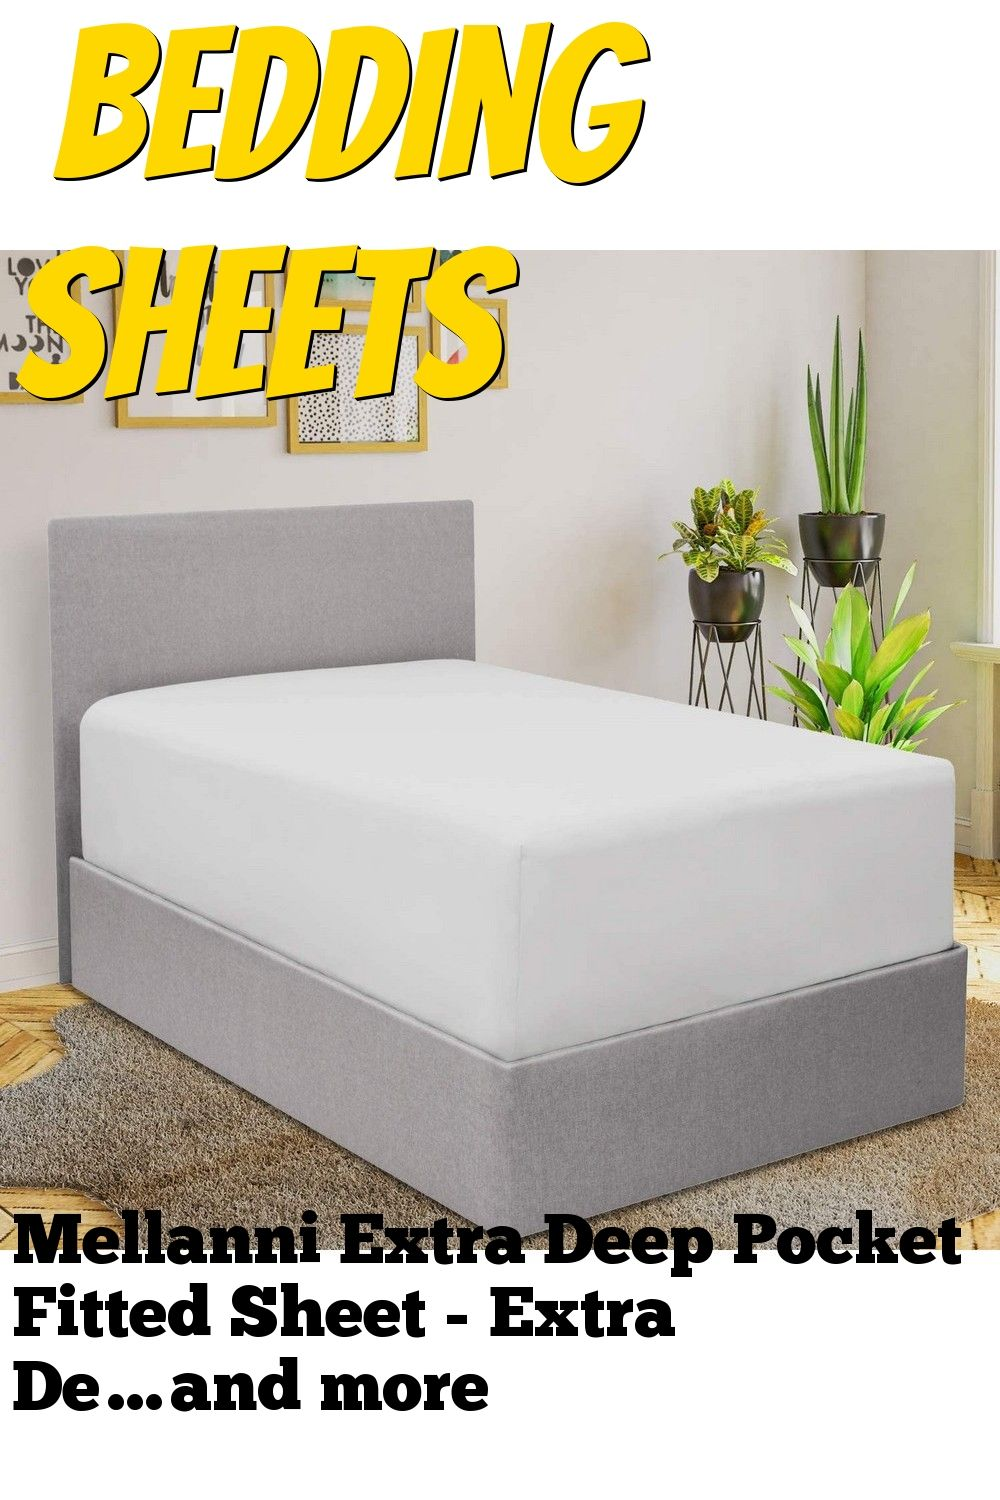 Mellanni Extra Deep Pocket Fitted Sheet Extra Deep Pocket King Size Bottom Sheet Only 1800 B King Mattress Mattress Size Chart King Size Mattress Extra deep pocket king size sheets